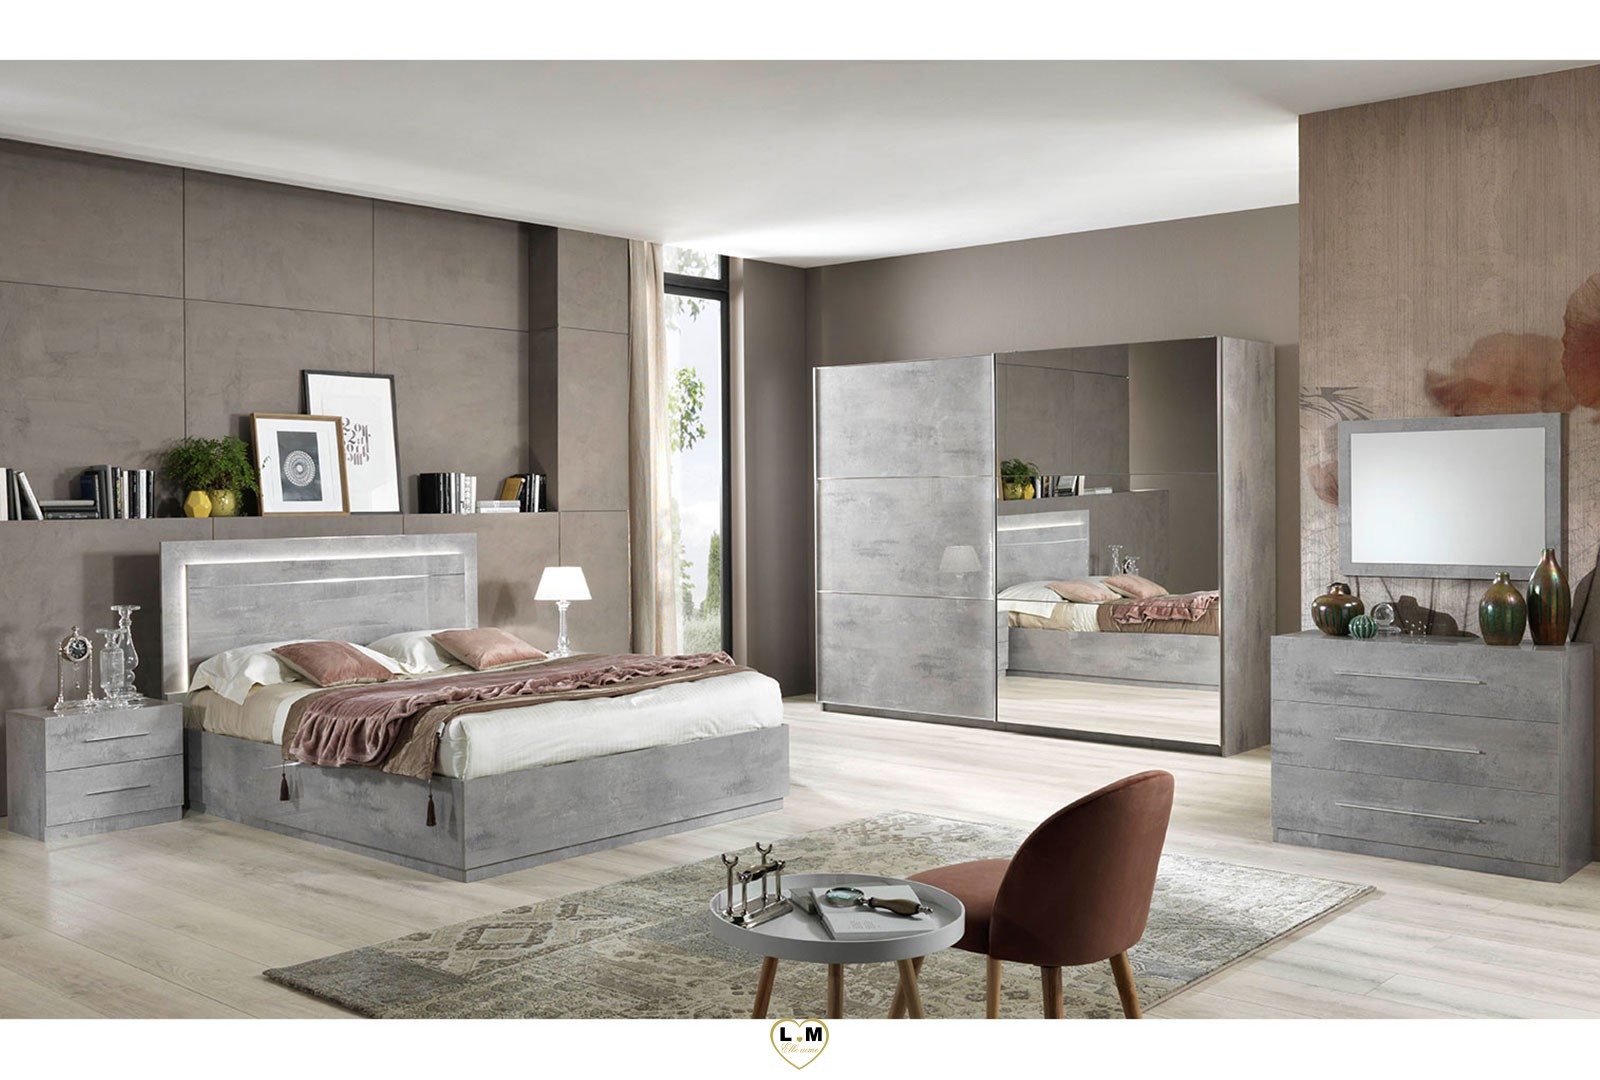 Sirolo laque marbre taupe chambre a coucher moderne l - Chambre a coucher porte coulissante ...